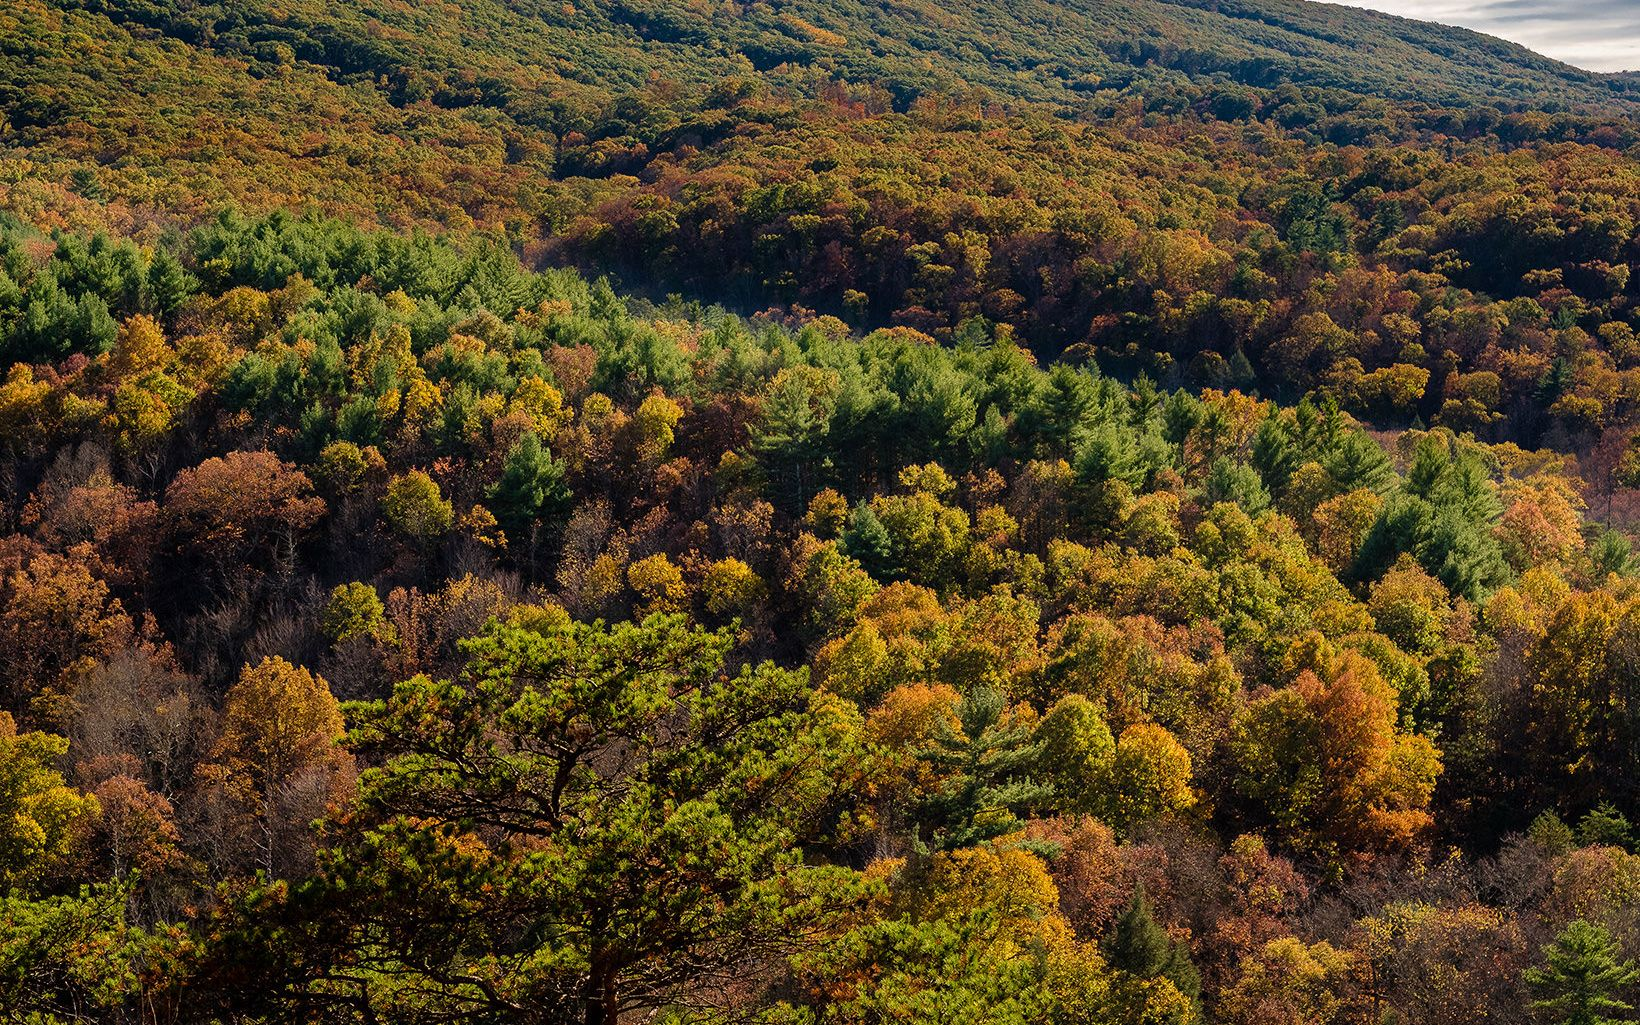 We're working to keep the forests of the central Appalachians healthy and connected n the face of climate change.